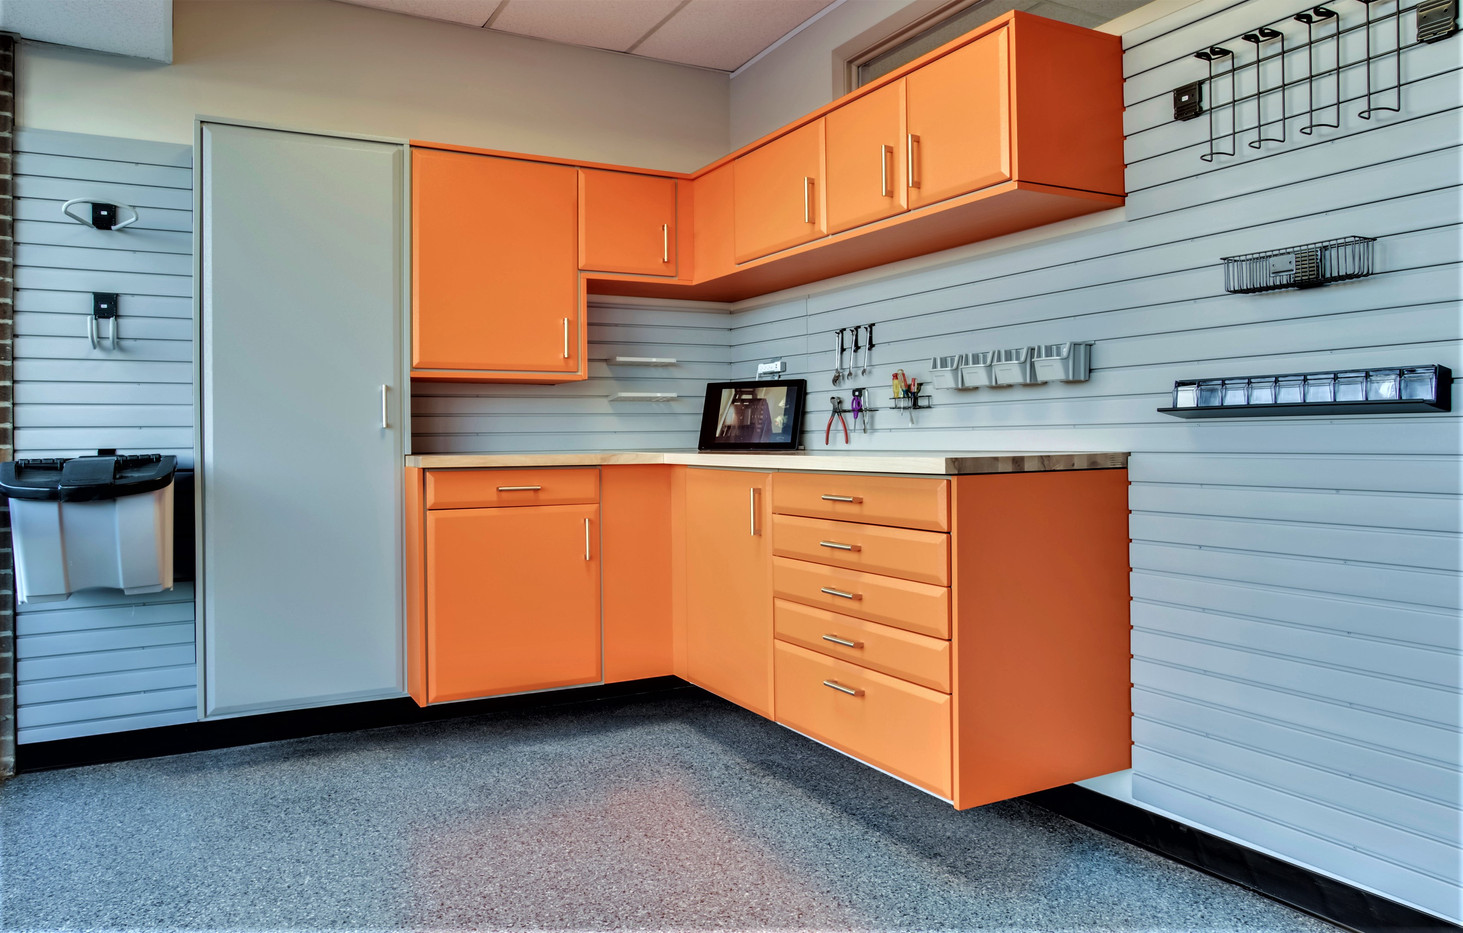 Powder coated cabinets with slat wall and epoxy floors from Designer Garages